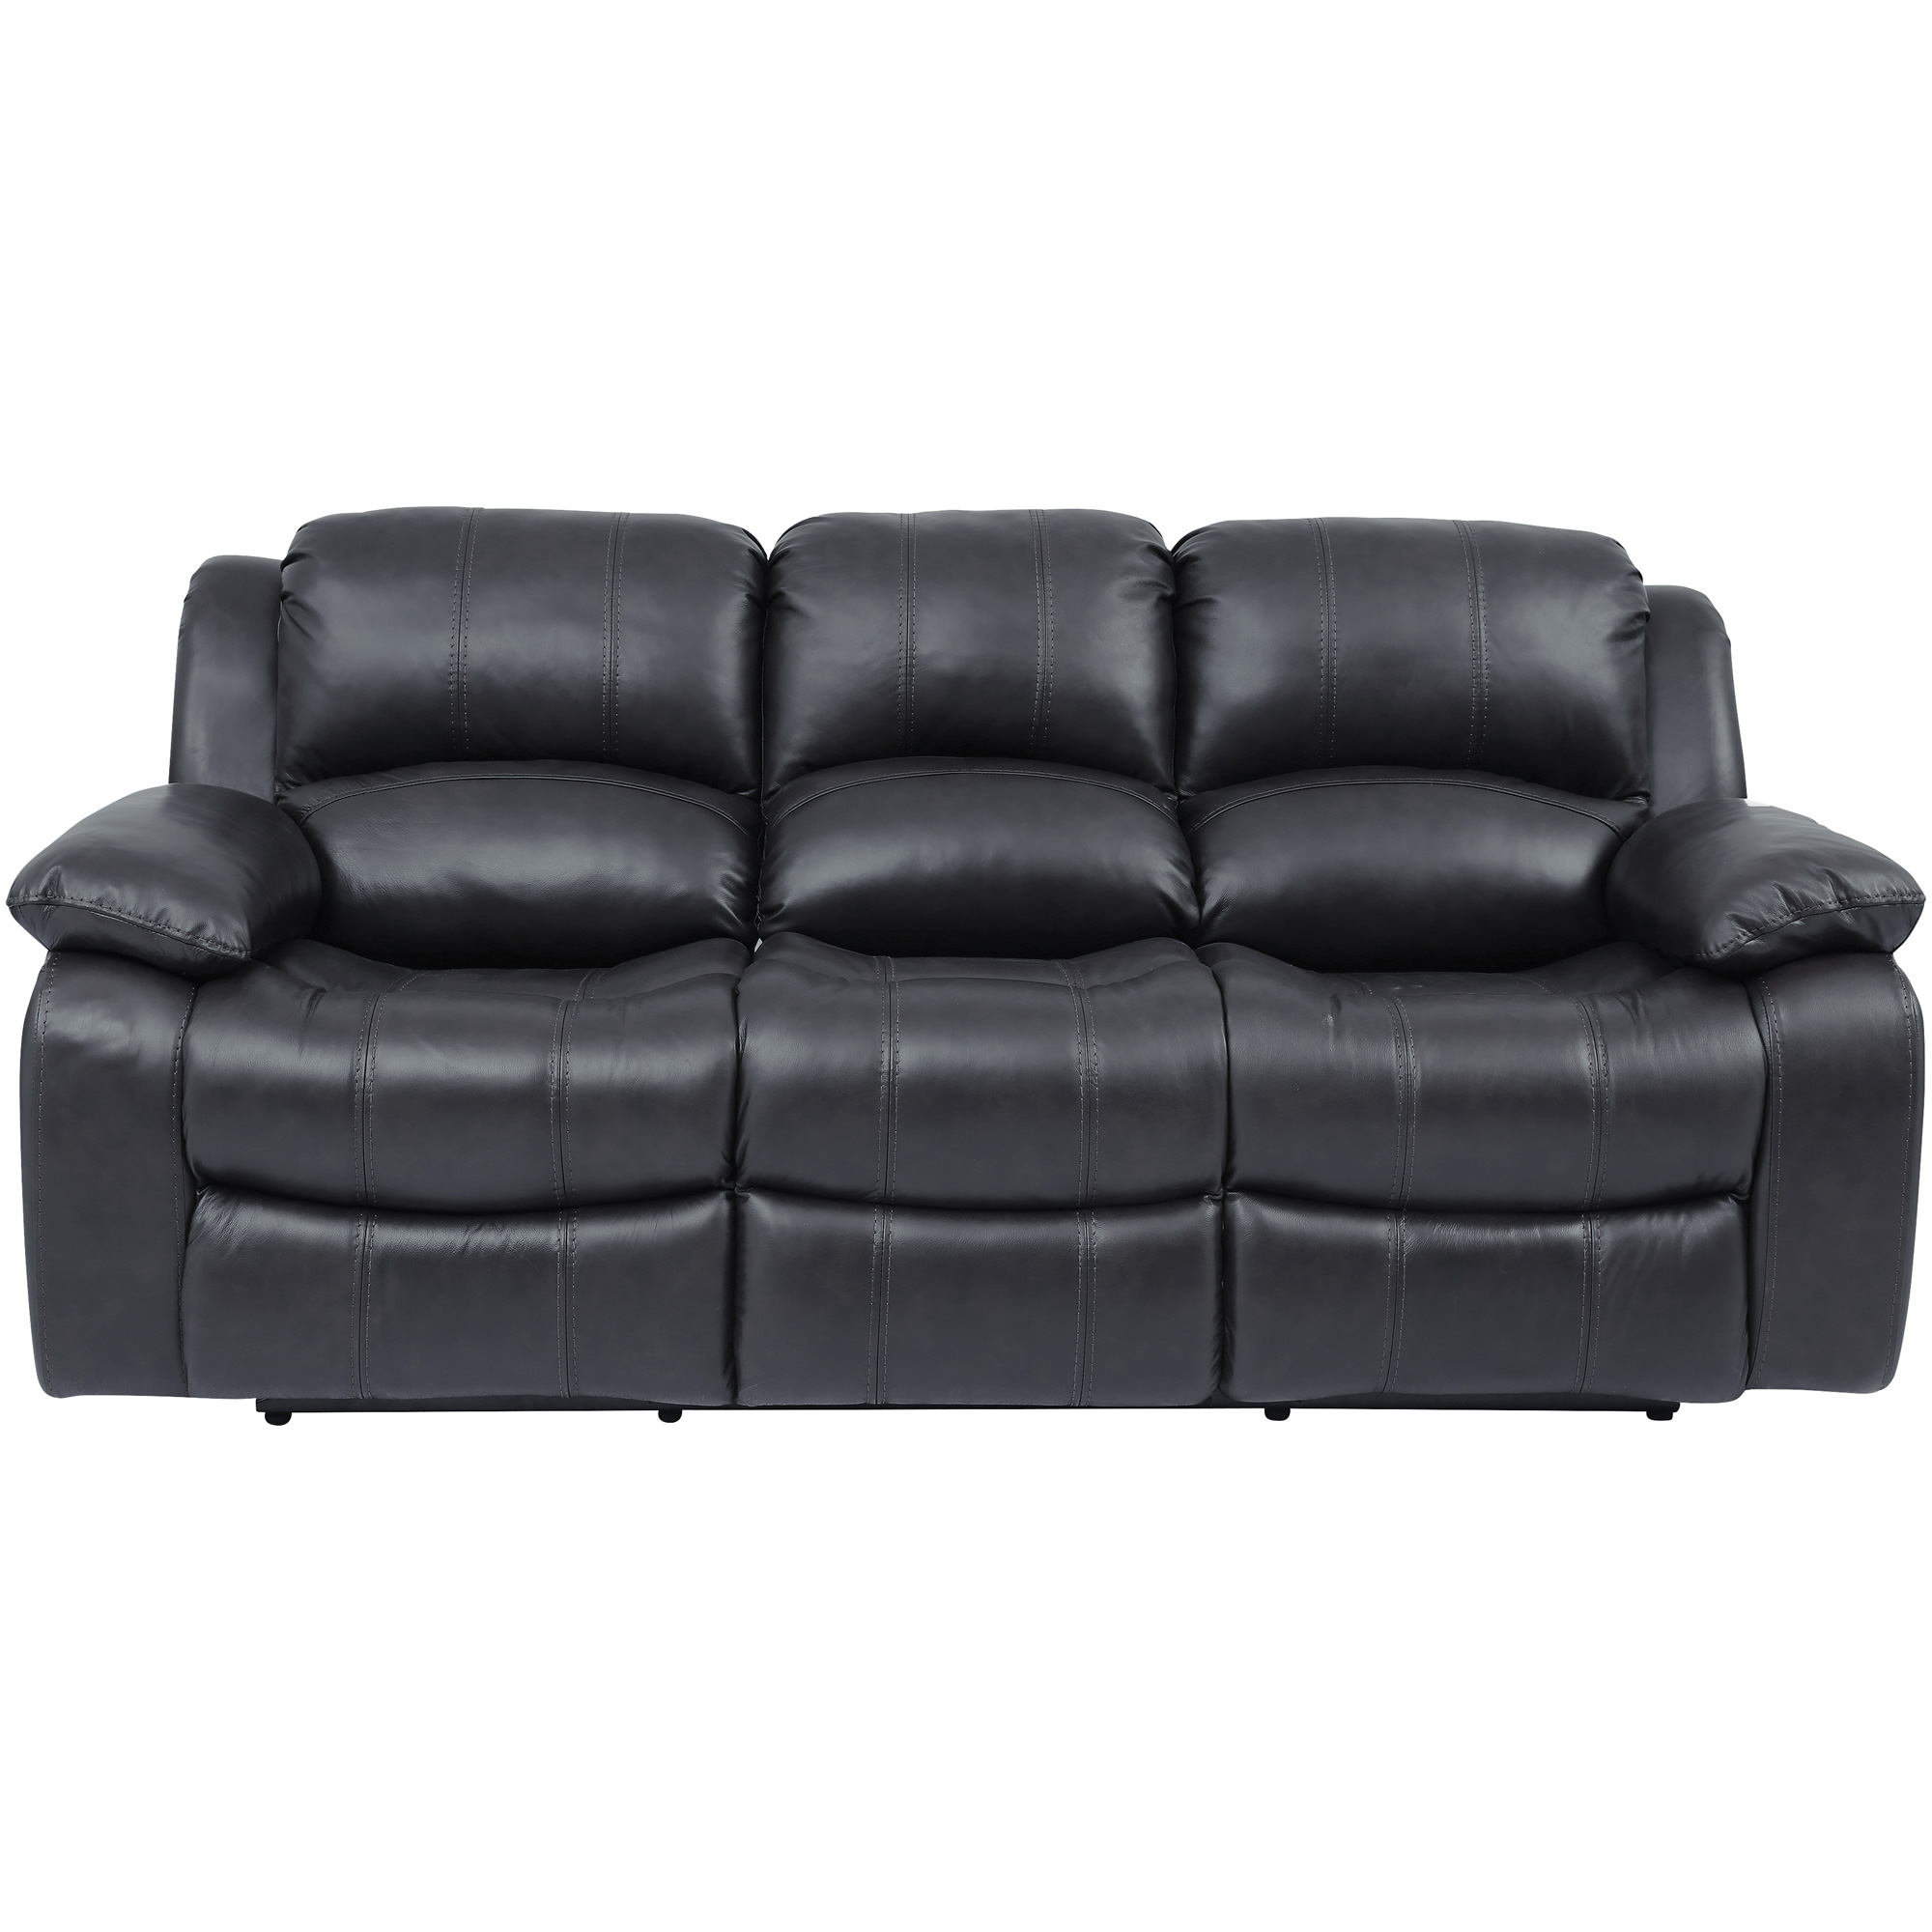 Wah Cheers | Ender Gray Leather Reclining Sofa